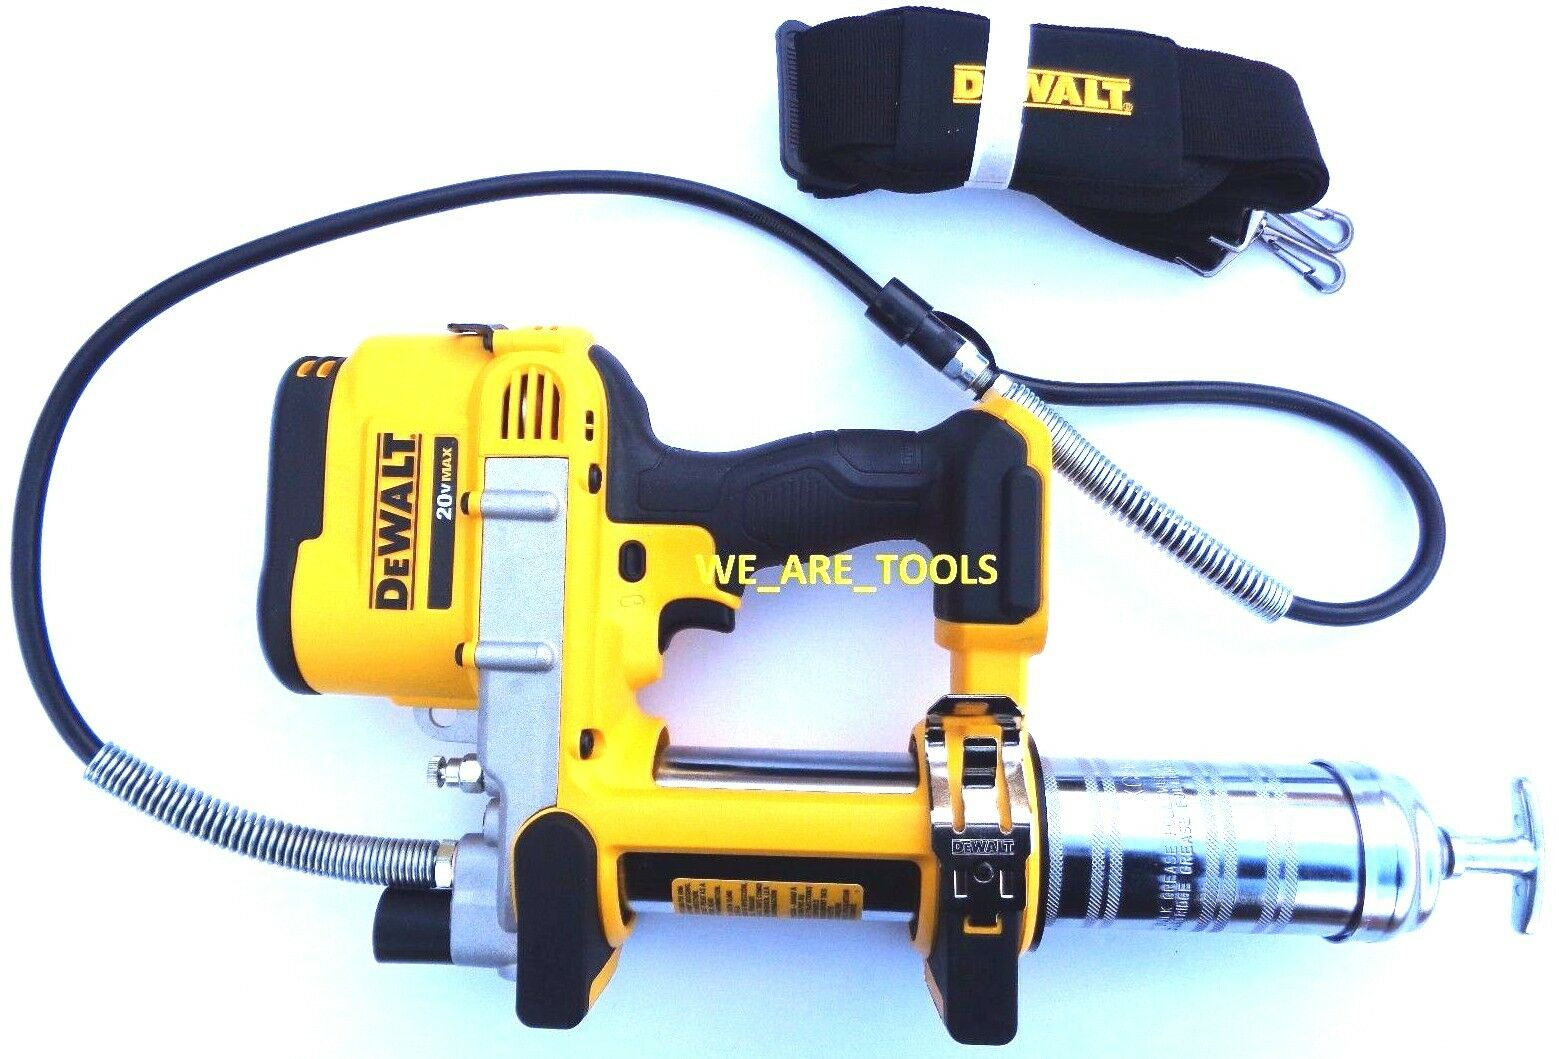 Battery grease gun ryobi protect hardwood from office chair